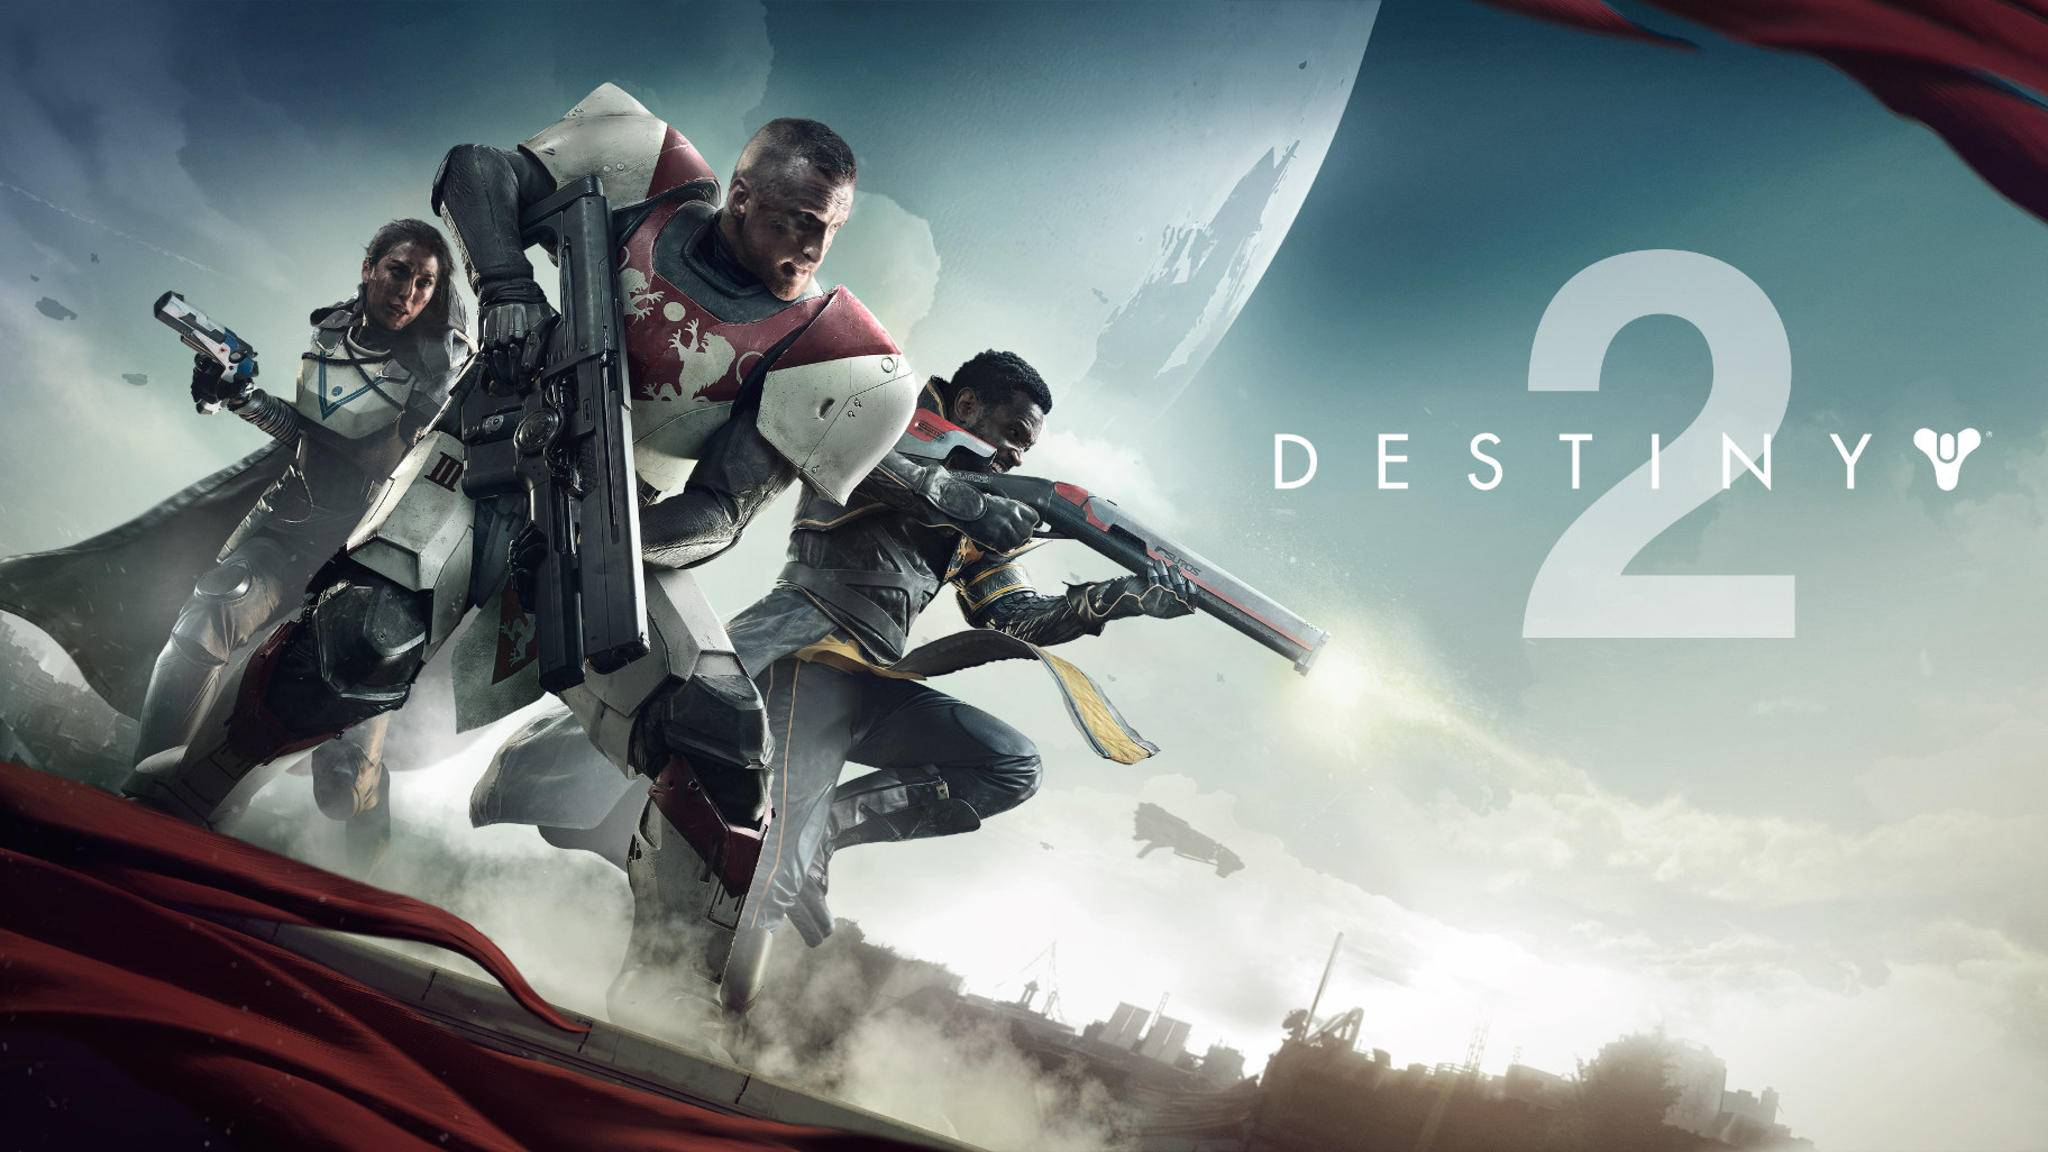 Destiny 2 Artwork